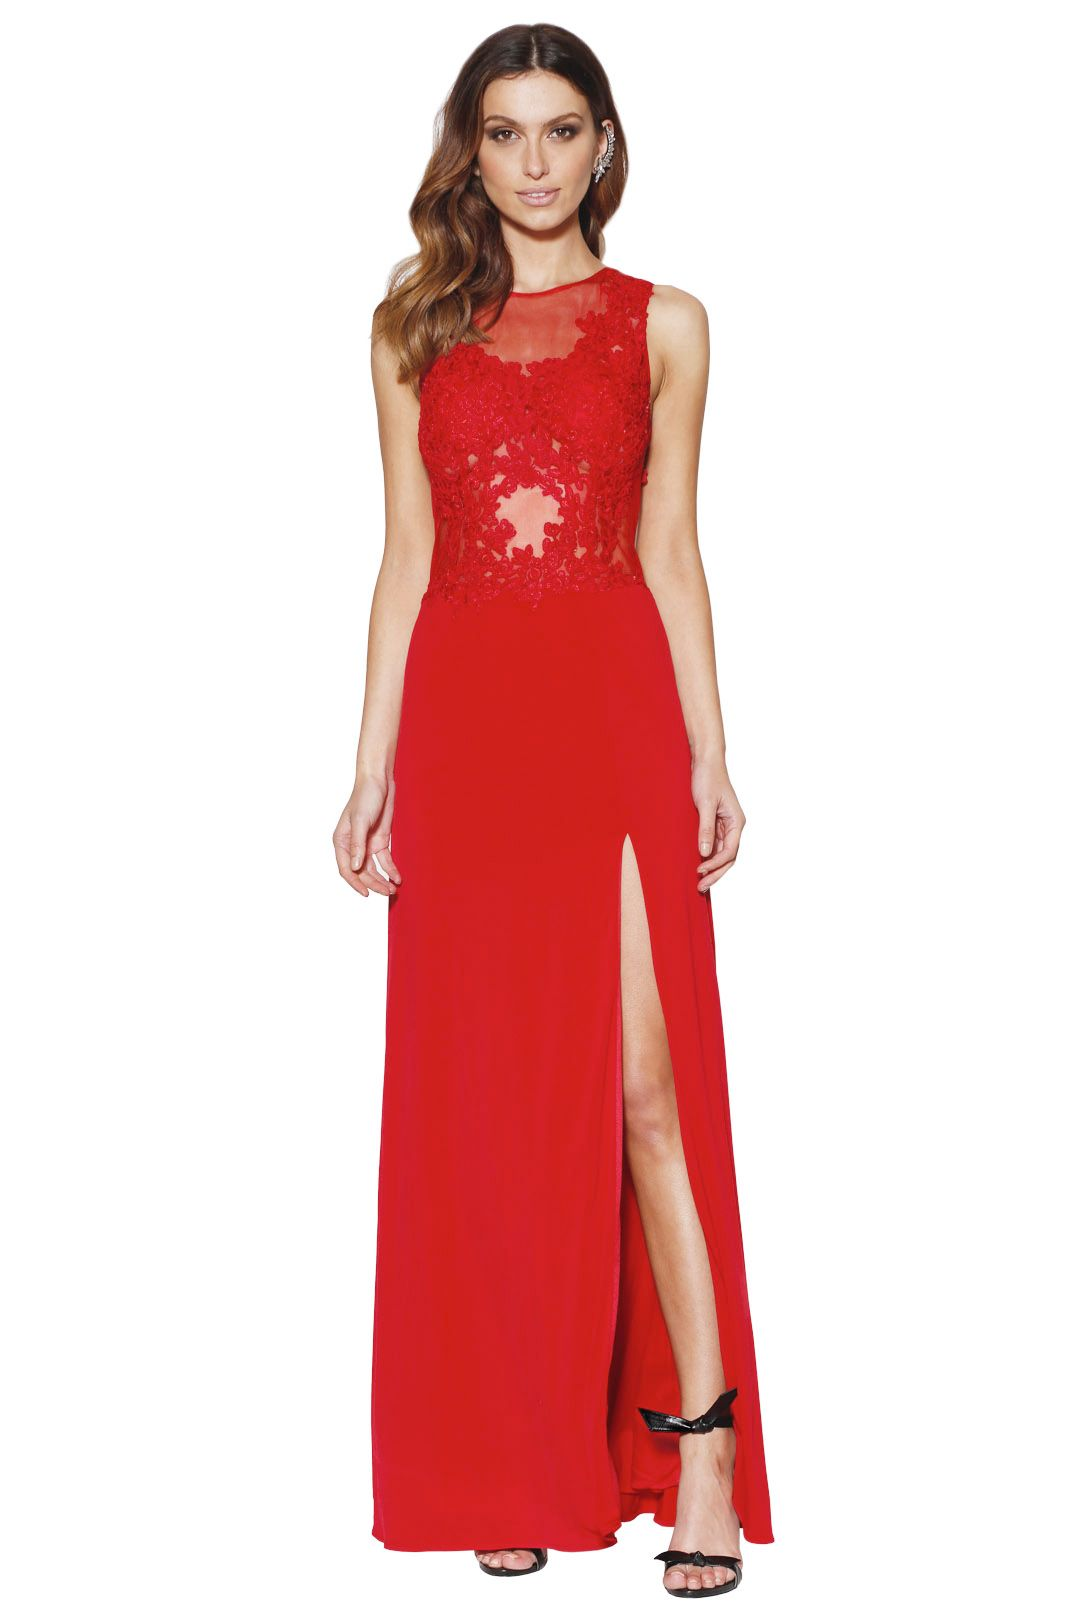 Grace and Hart - Starlet Gown Scarlet